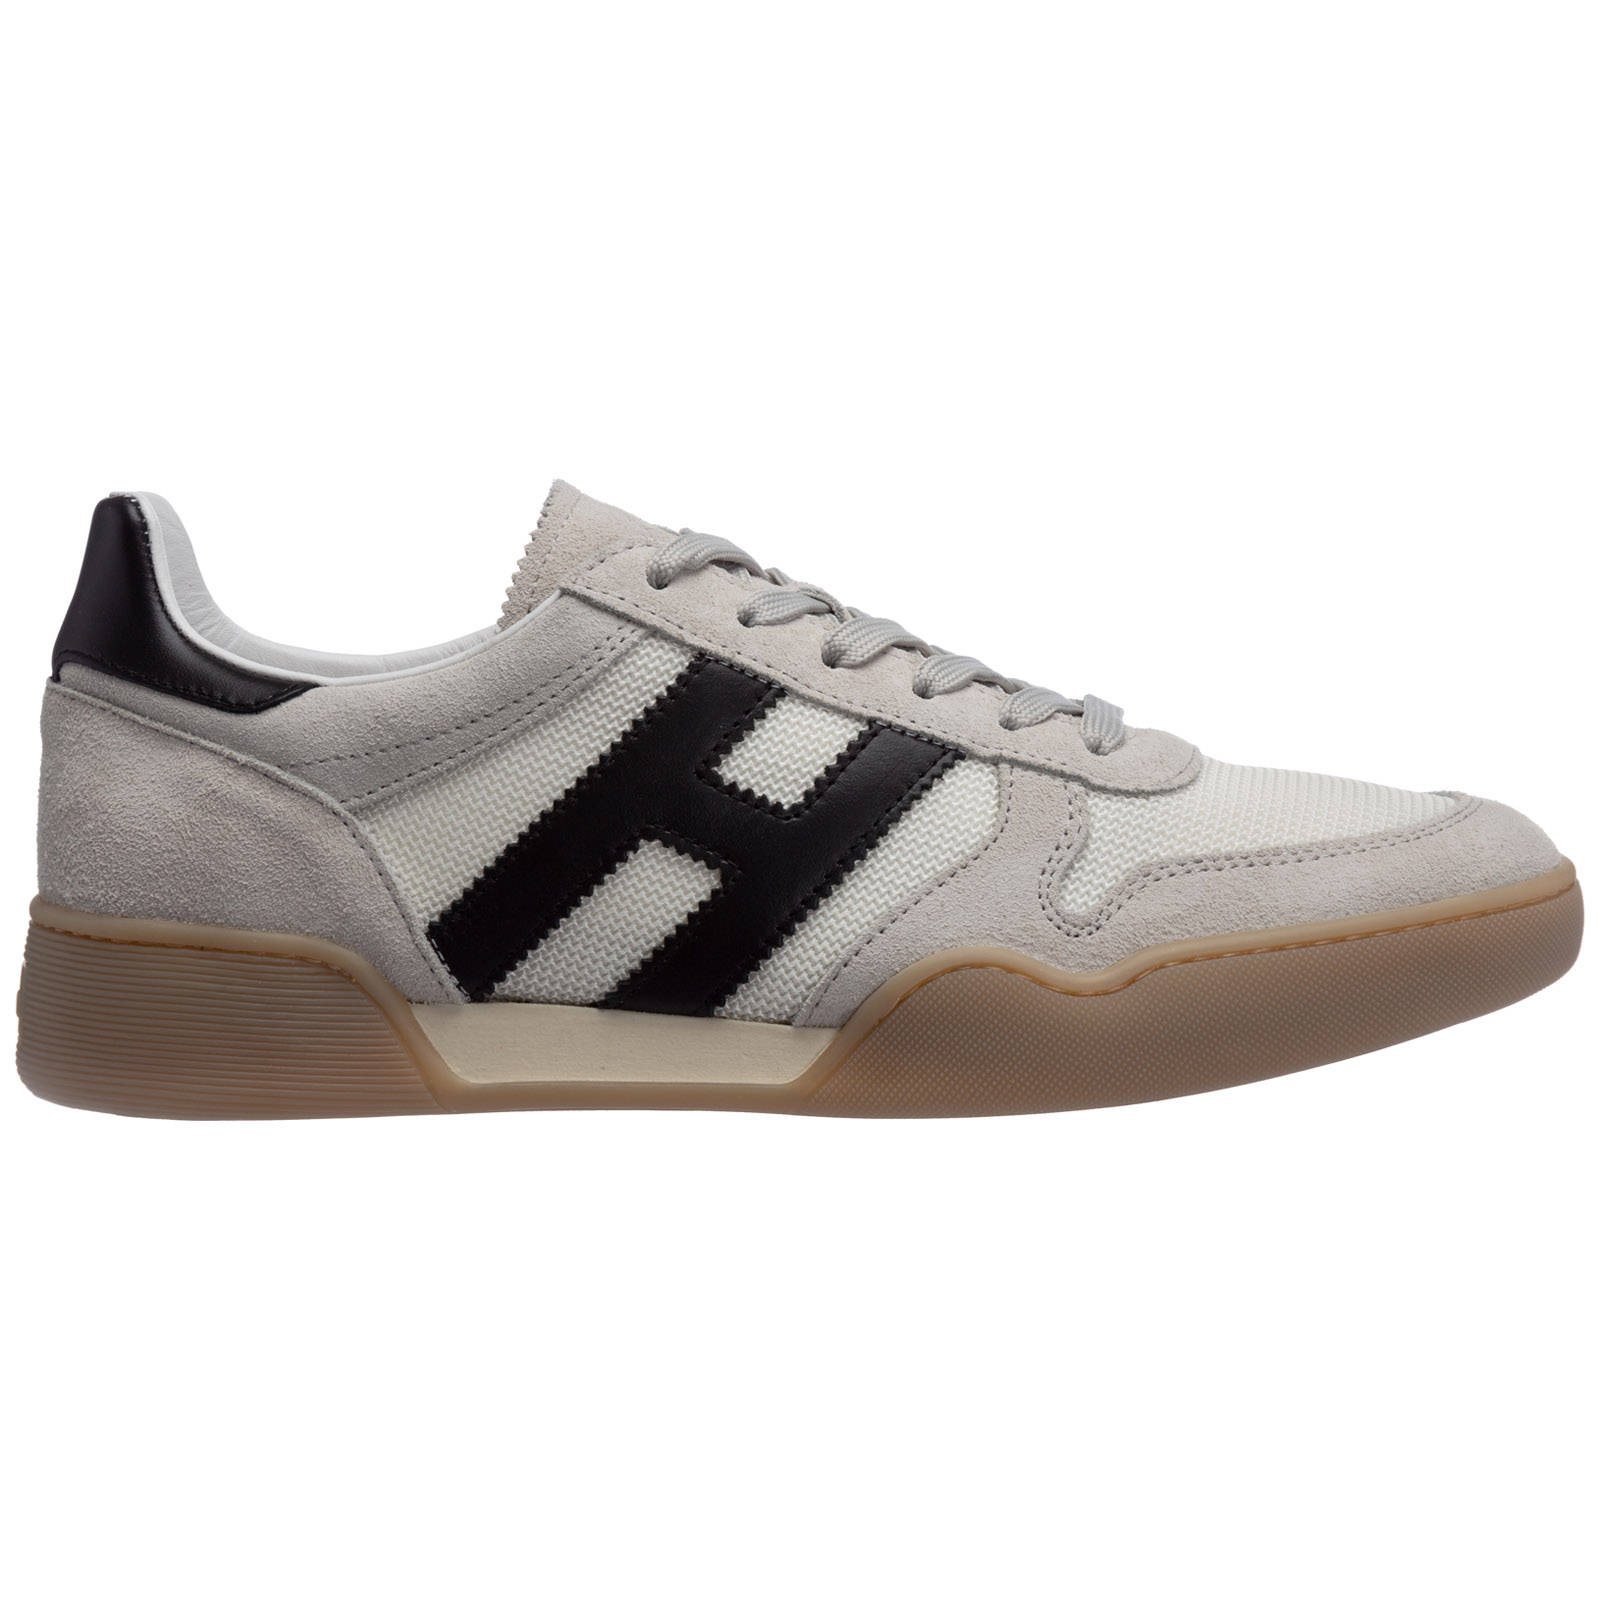 Men's shoes leather trainers sneakers h357